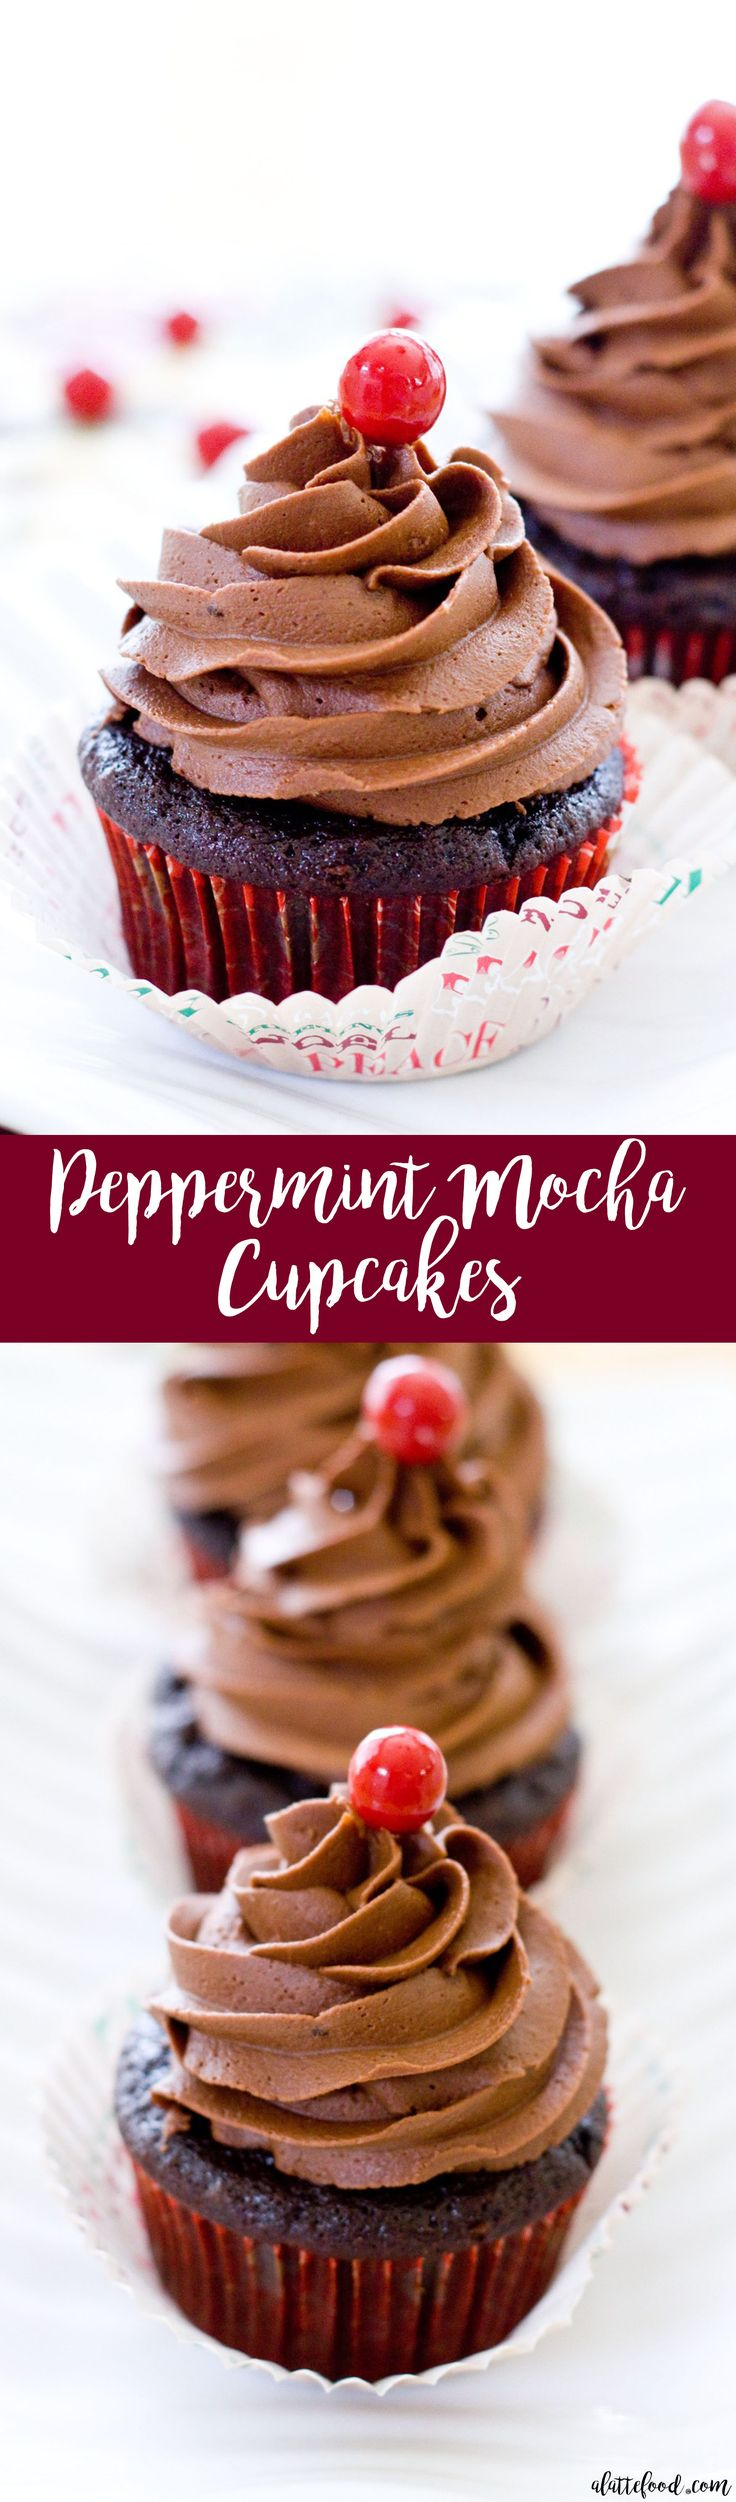 These peppermint mocha cupcakes are rich chocolate cupcakes topped with peppermint chocolate frosting! The best holiday dessert!